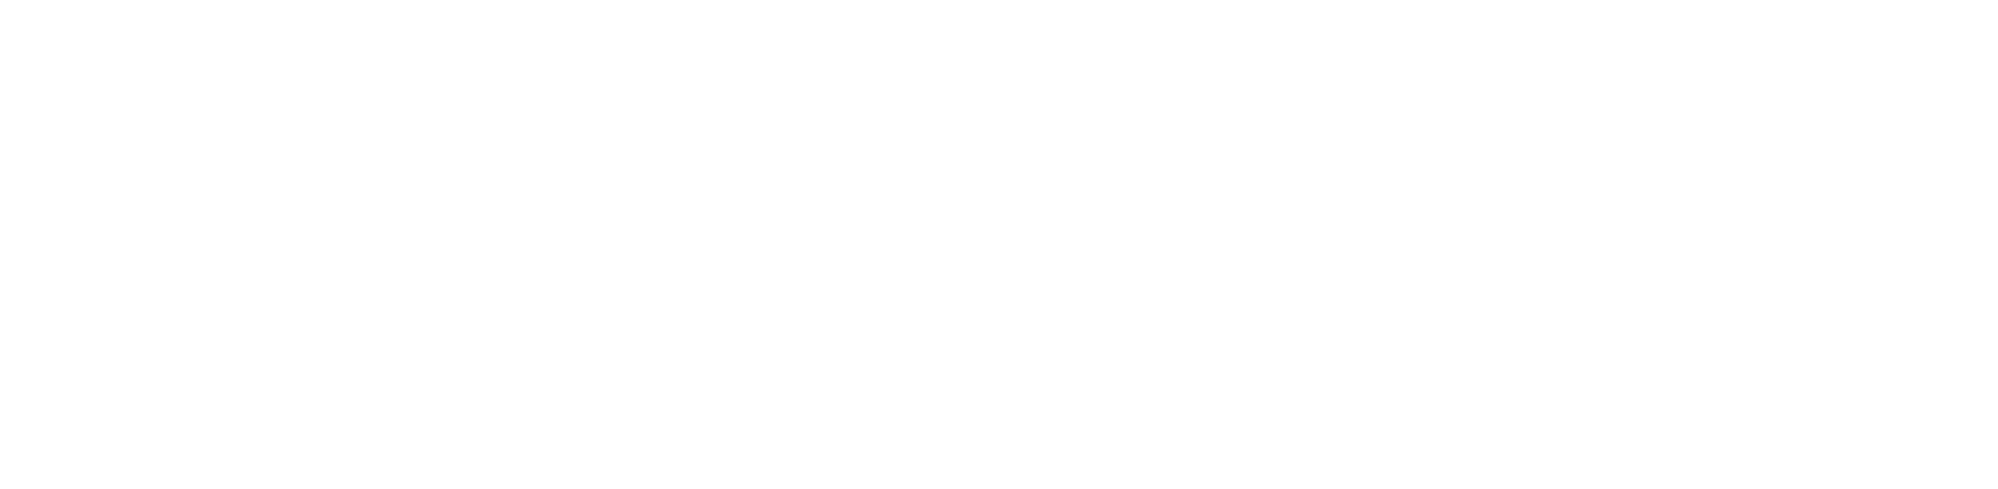 Tropical-Cafe-Logo